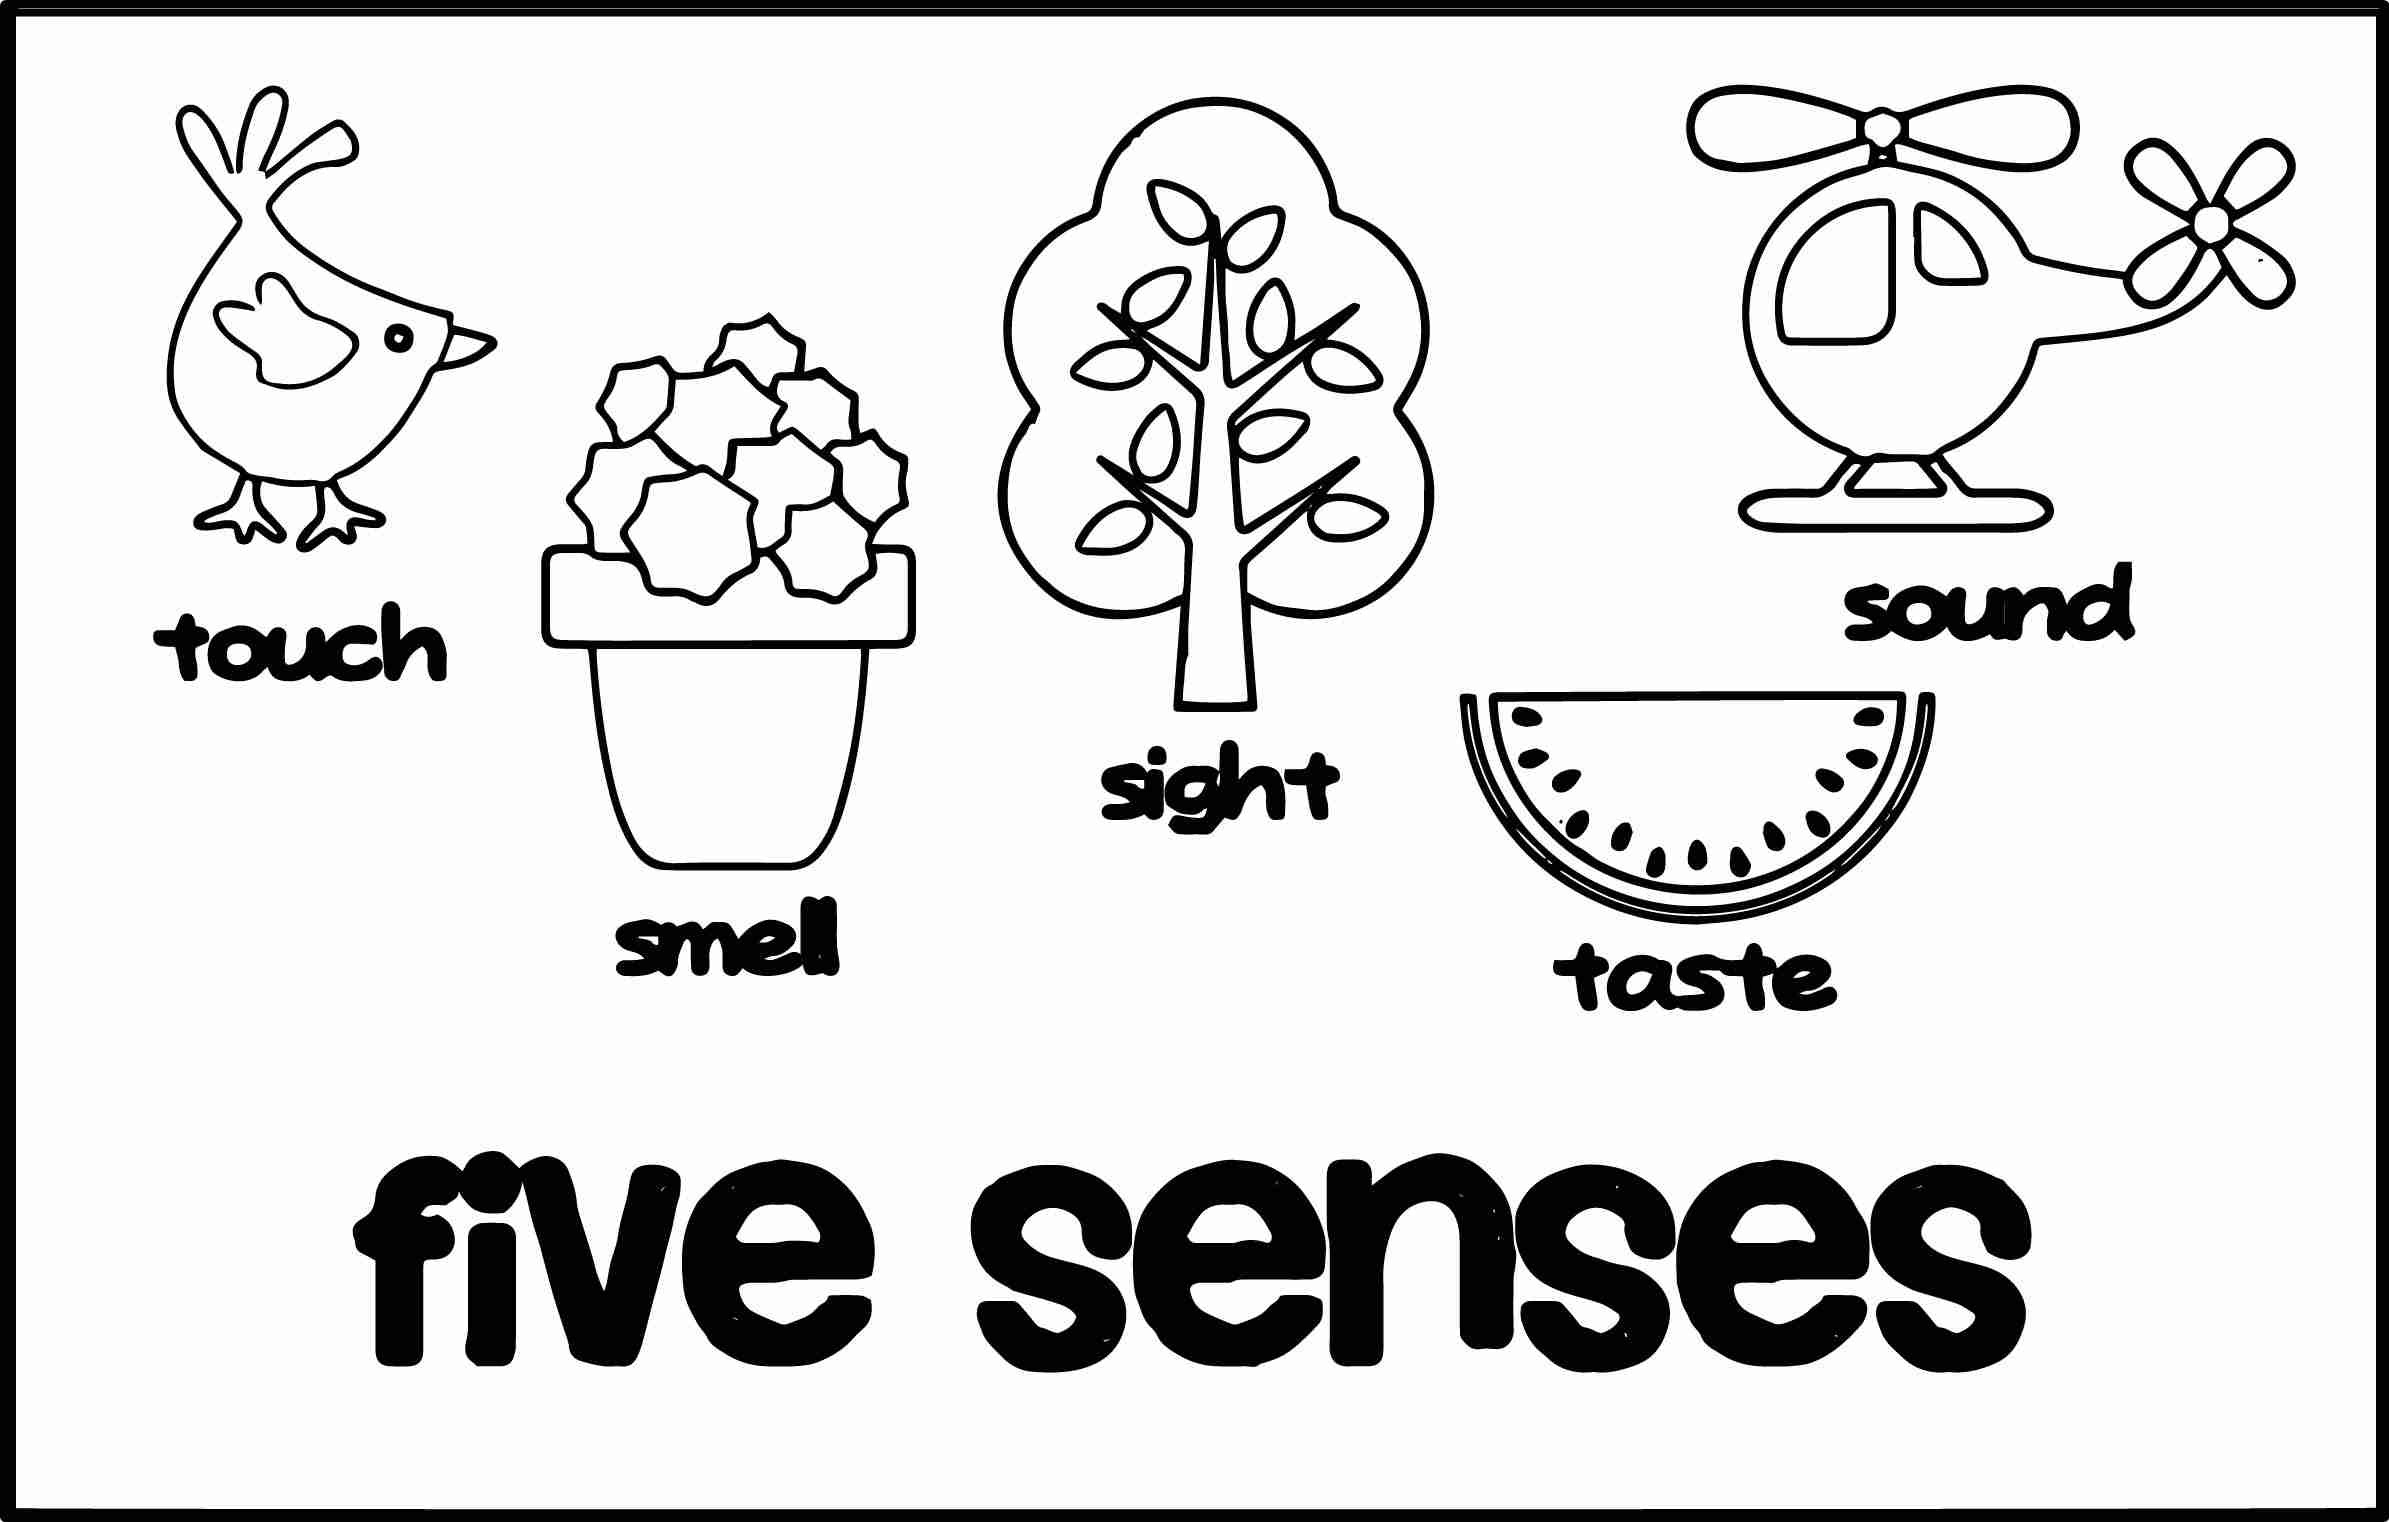 Five senses clipart coloring page. Photosheep me cute